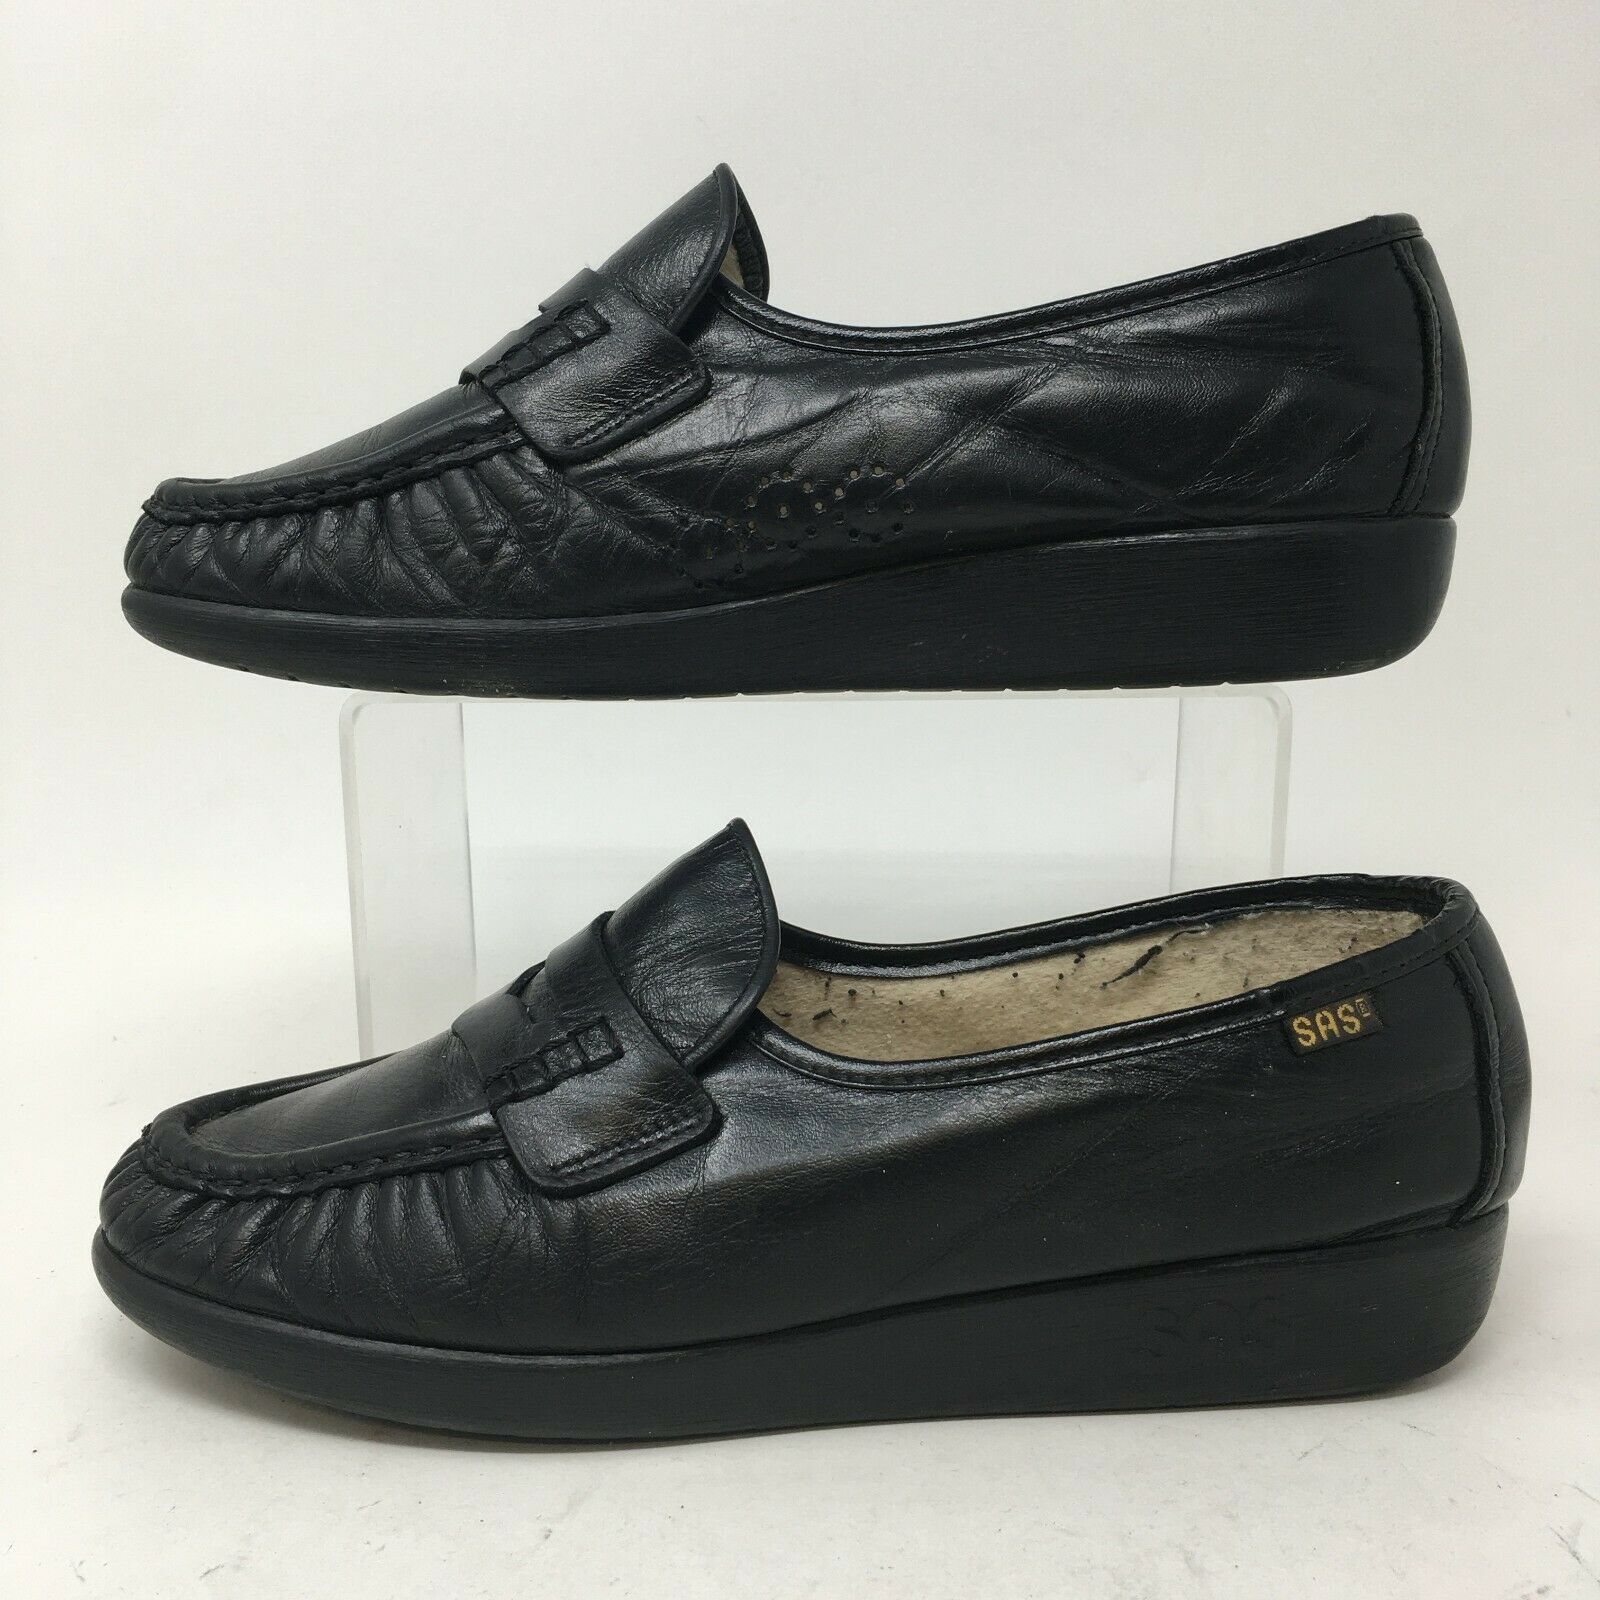 SAS Moc Toe Penny Loafer Wedge Womens 7 Black Leather Slip On Comfort Shoes